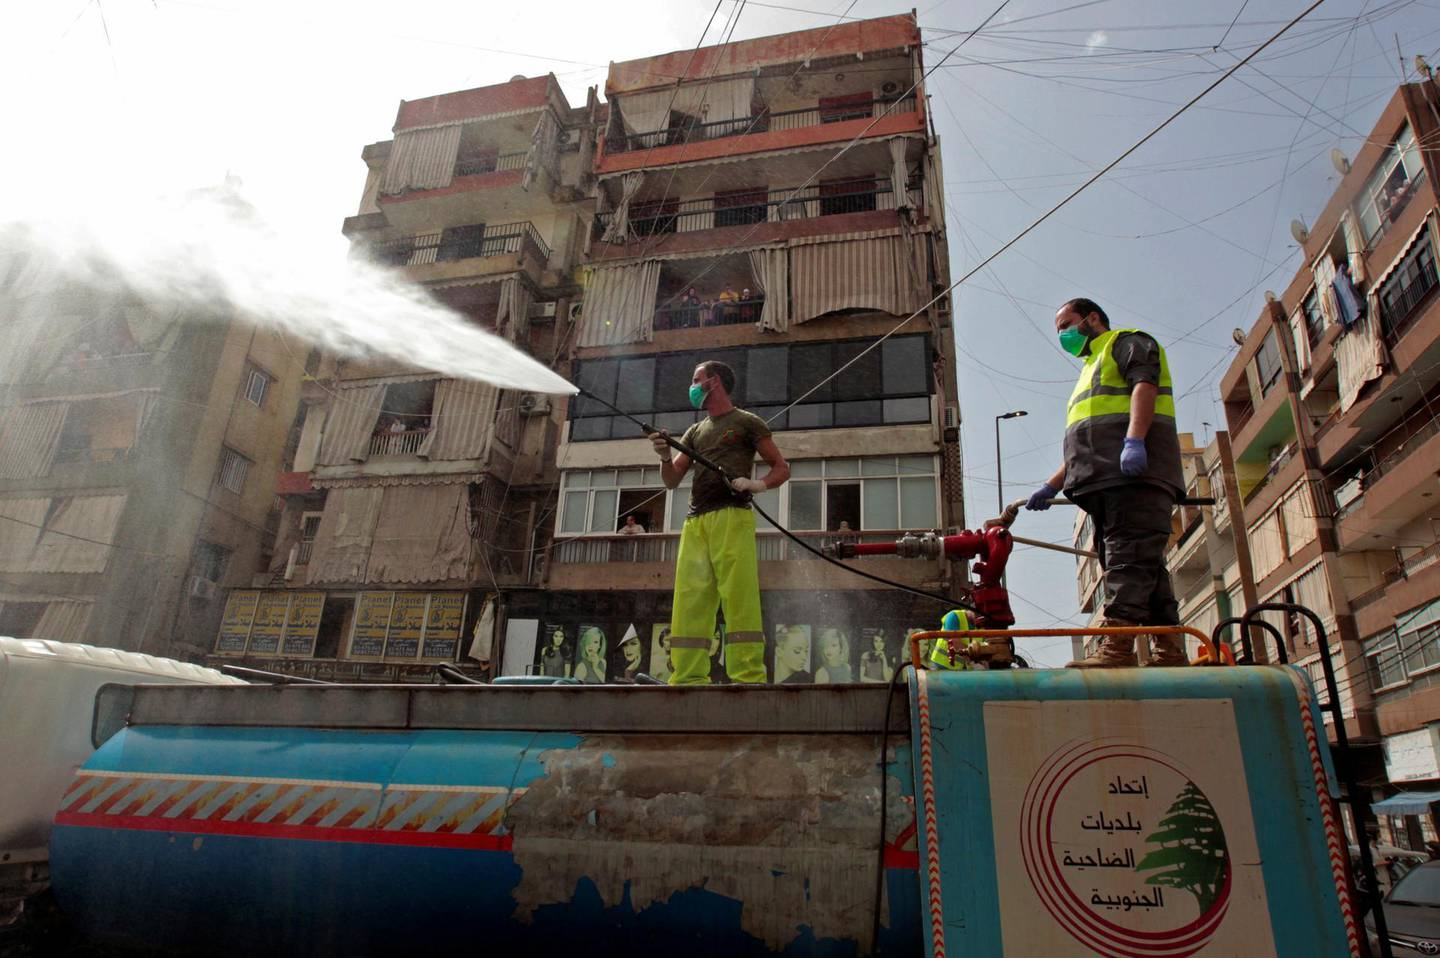 Men stand on a truck as they sanitize a street as a precaution against the spread of coronavirus disease (COVID-19), during a media tour organised by Hezbollah officials, in Beirut's southern suburb, Lebanon March 31, 2020. Picture taken March 31, 2020.  REUTERS/Aziz Taher